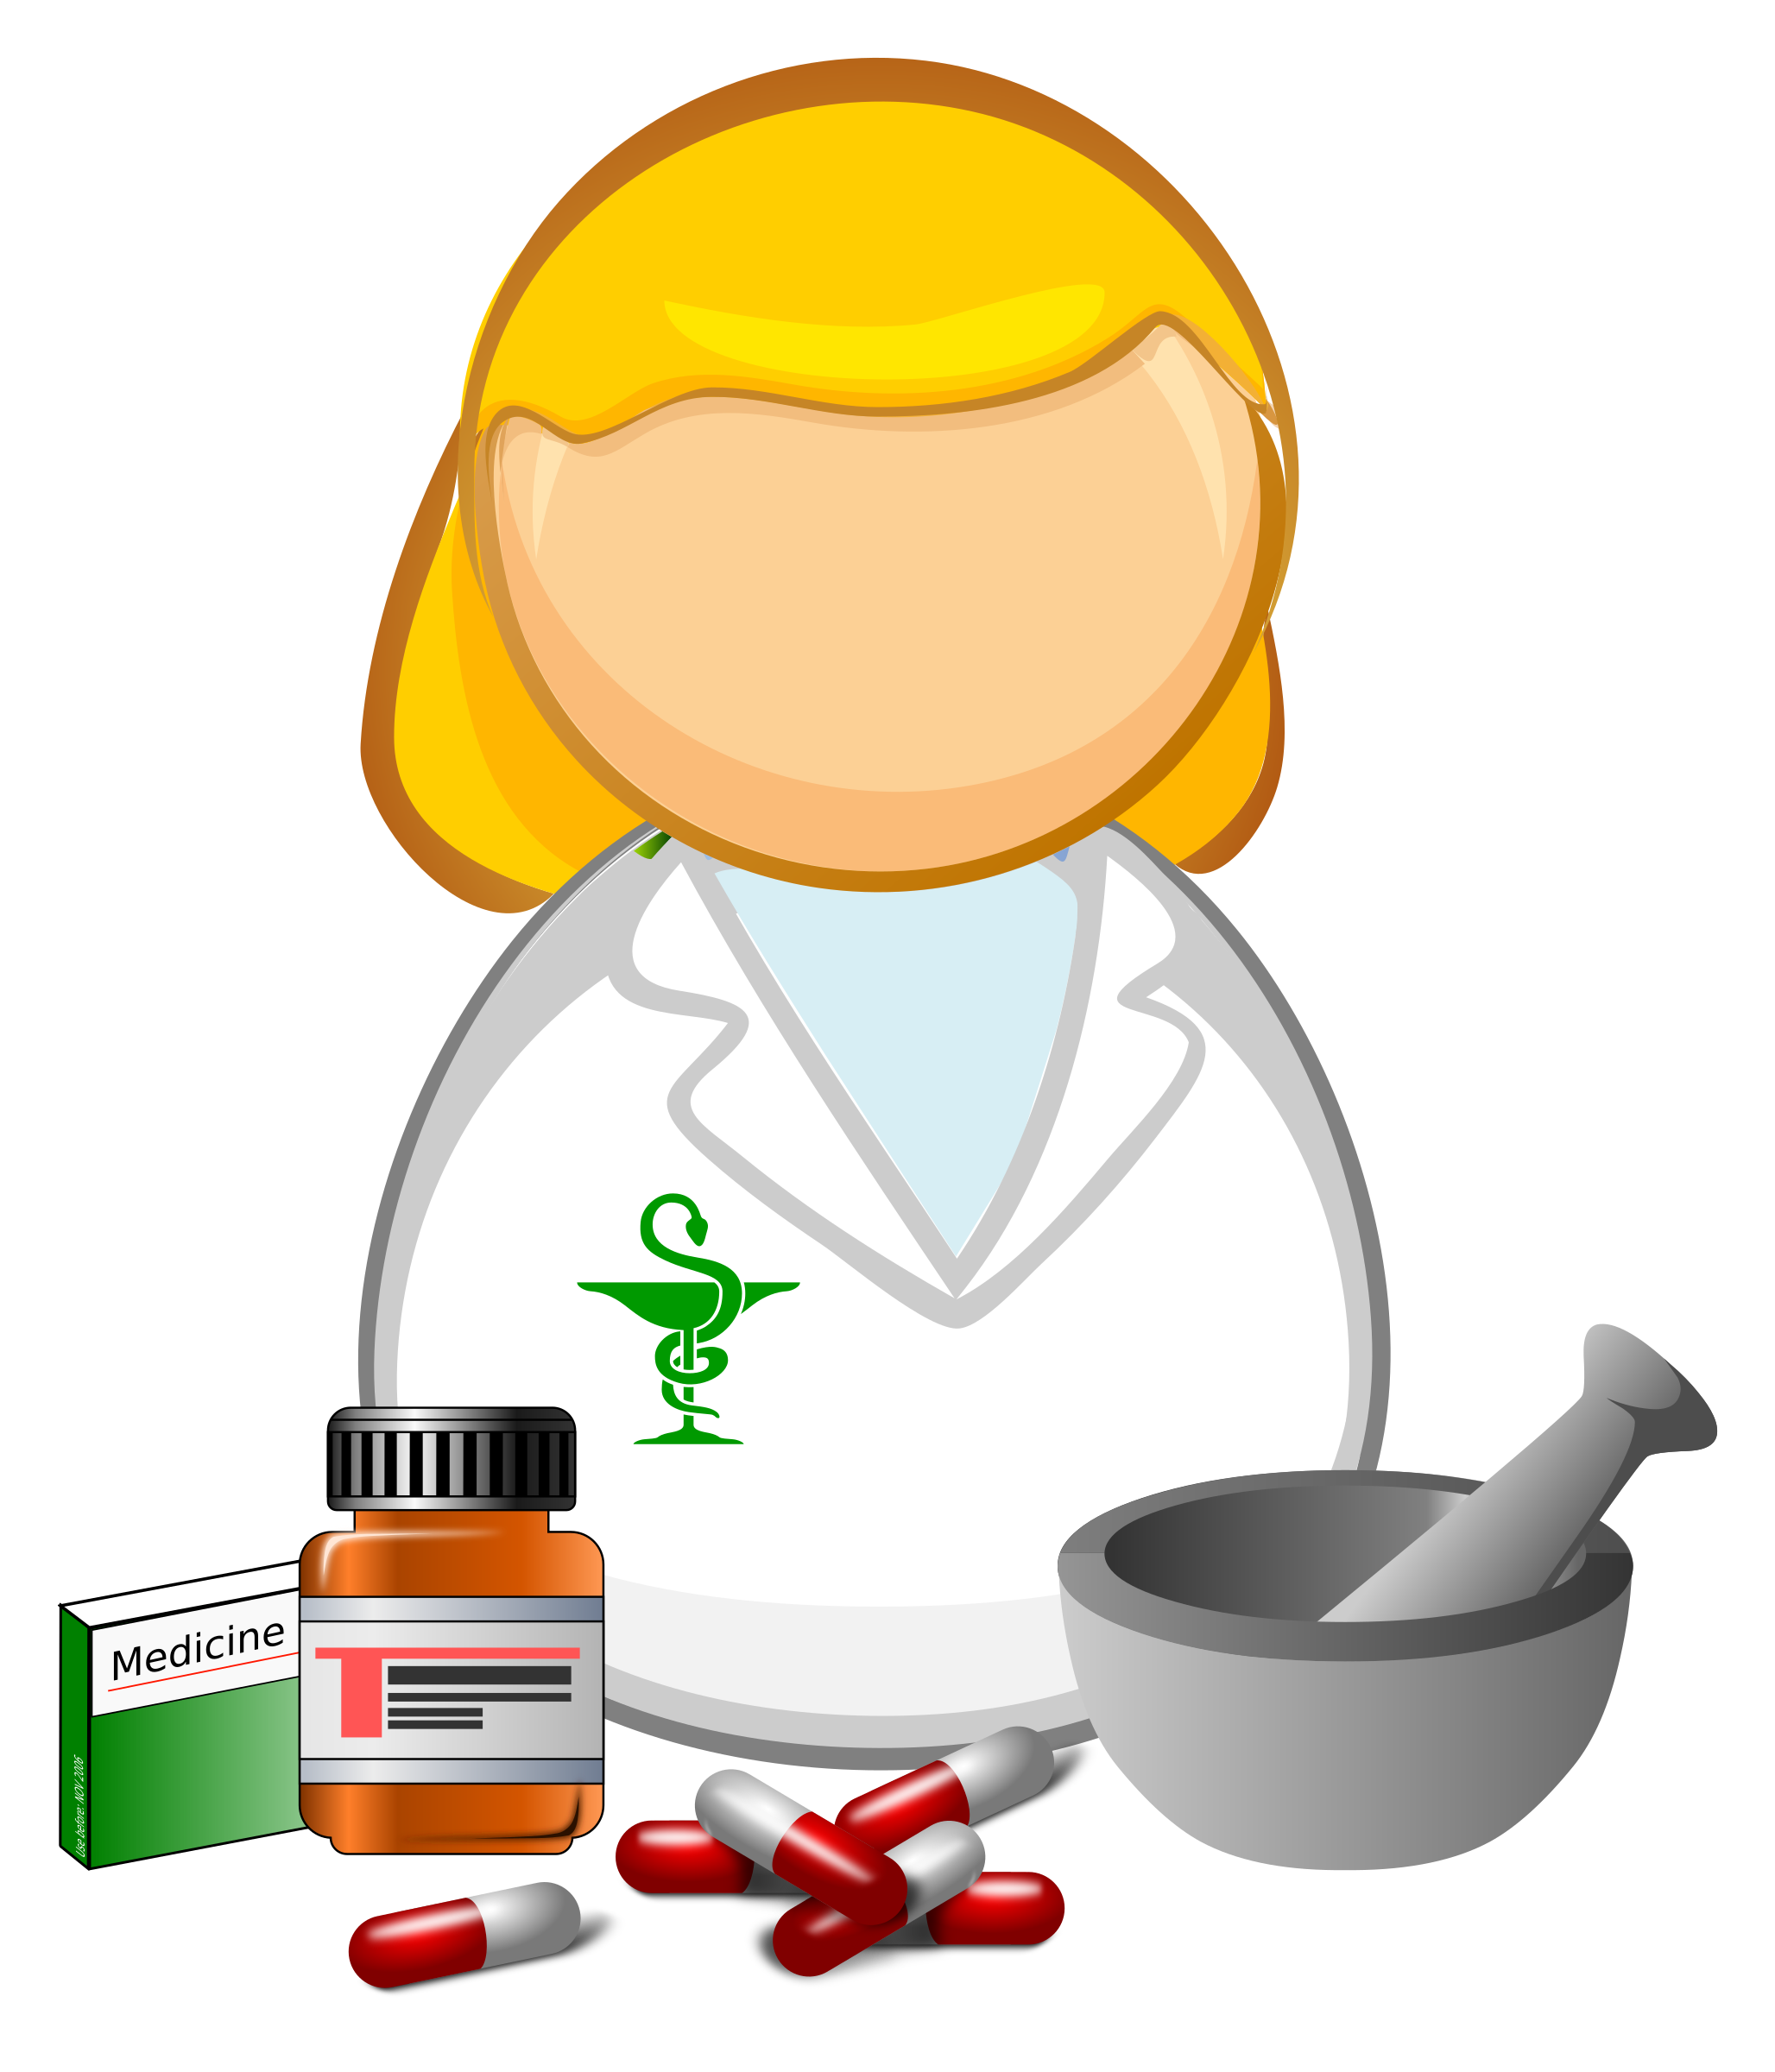 clipart library library Apothecary big image png. Pharmacist clipart.